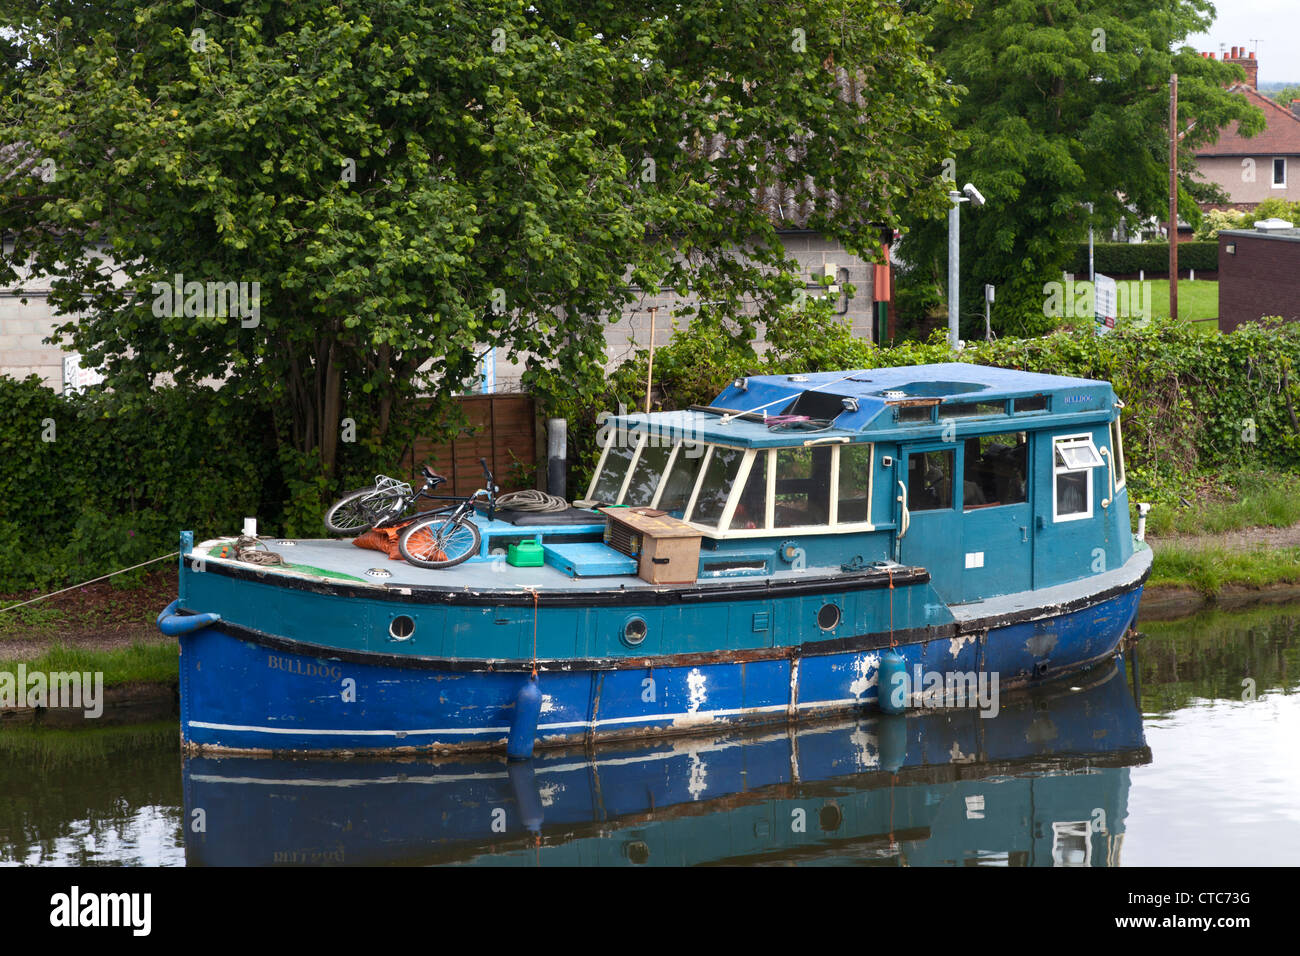 Dilapidated houseboat stock photos dilapidated houseboat stock dilapidated old river boat on the bridgewater canal at stockton heath cheshire stock image publicscrutiny Image collections